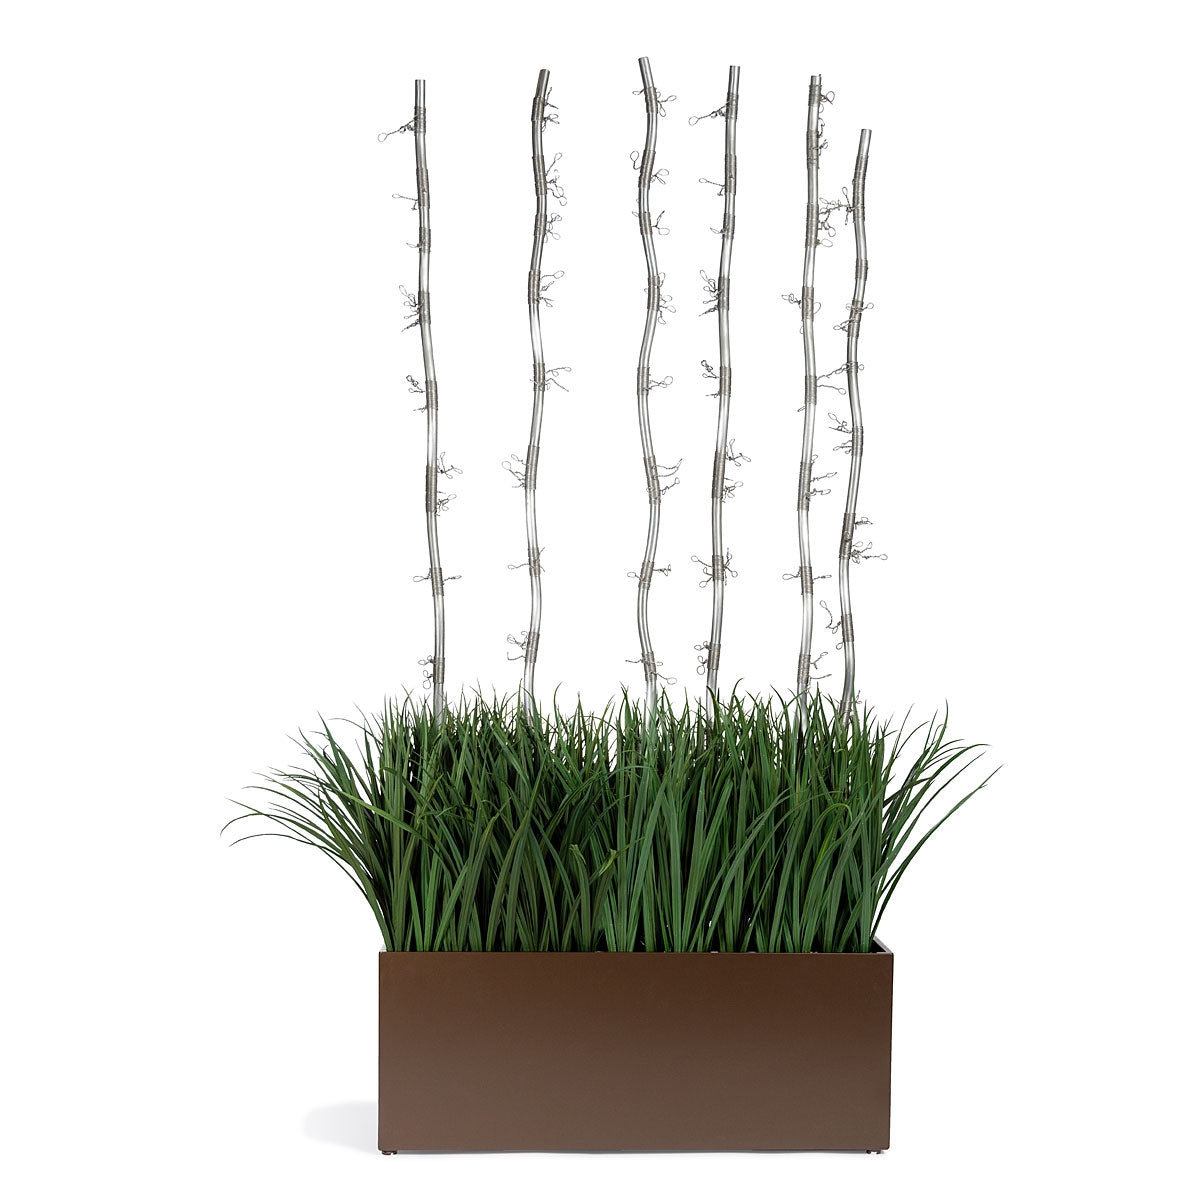 Grass: Liriope and Fantasy Branch in Bronze Black Rectangle